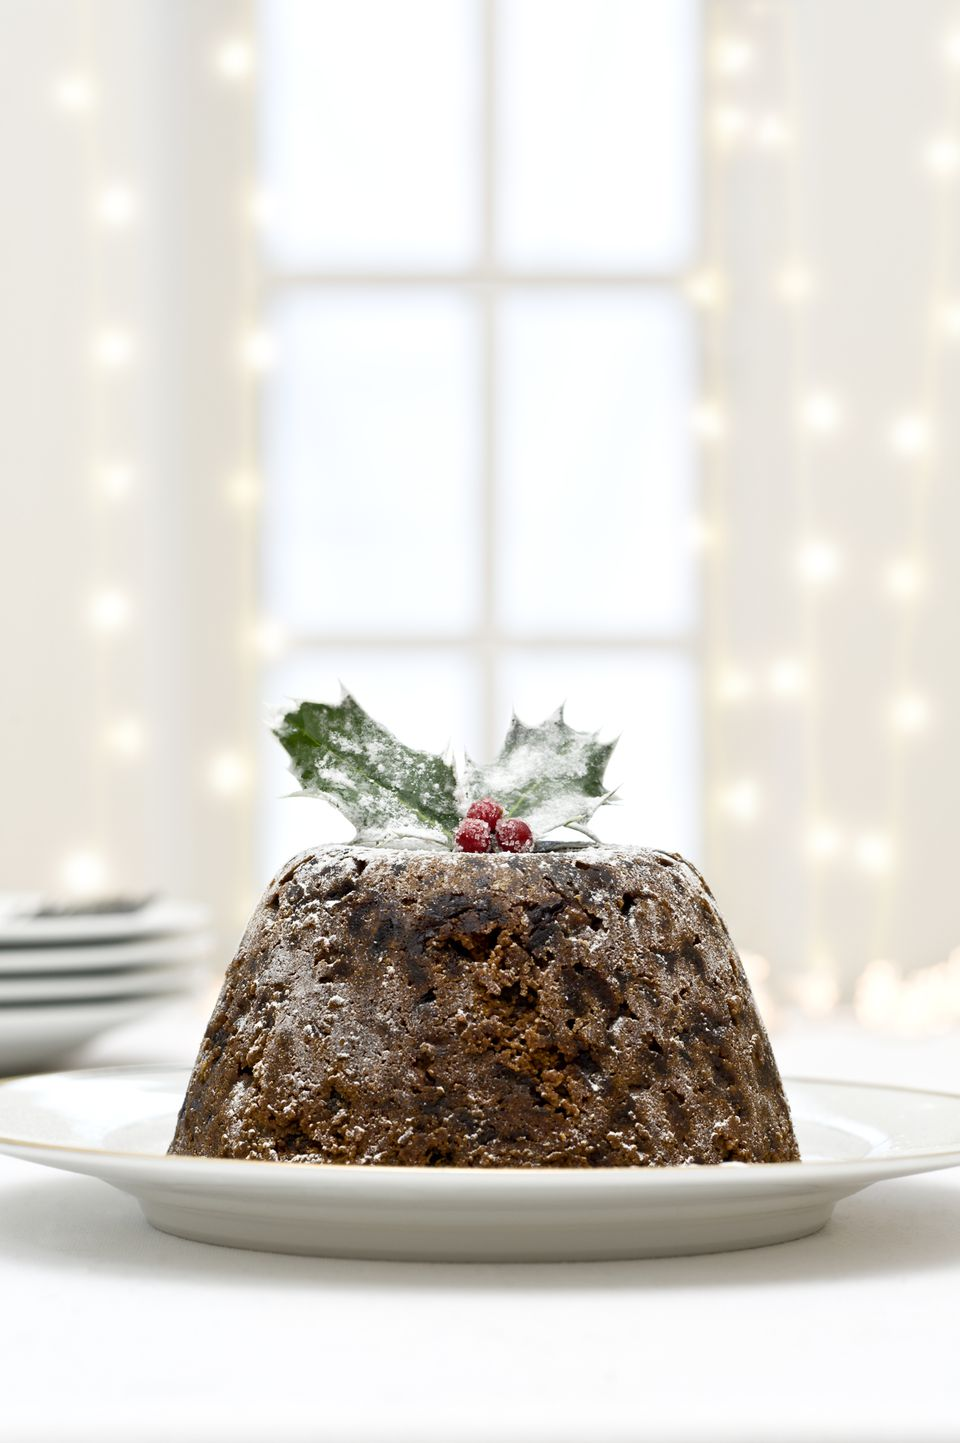 Tried and tested british christmas pudding recipe christmas pudding forumfinder Choice Image